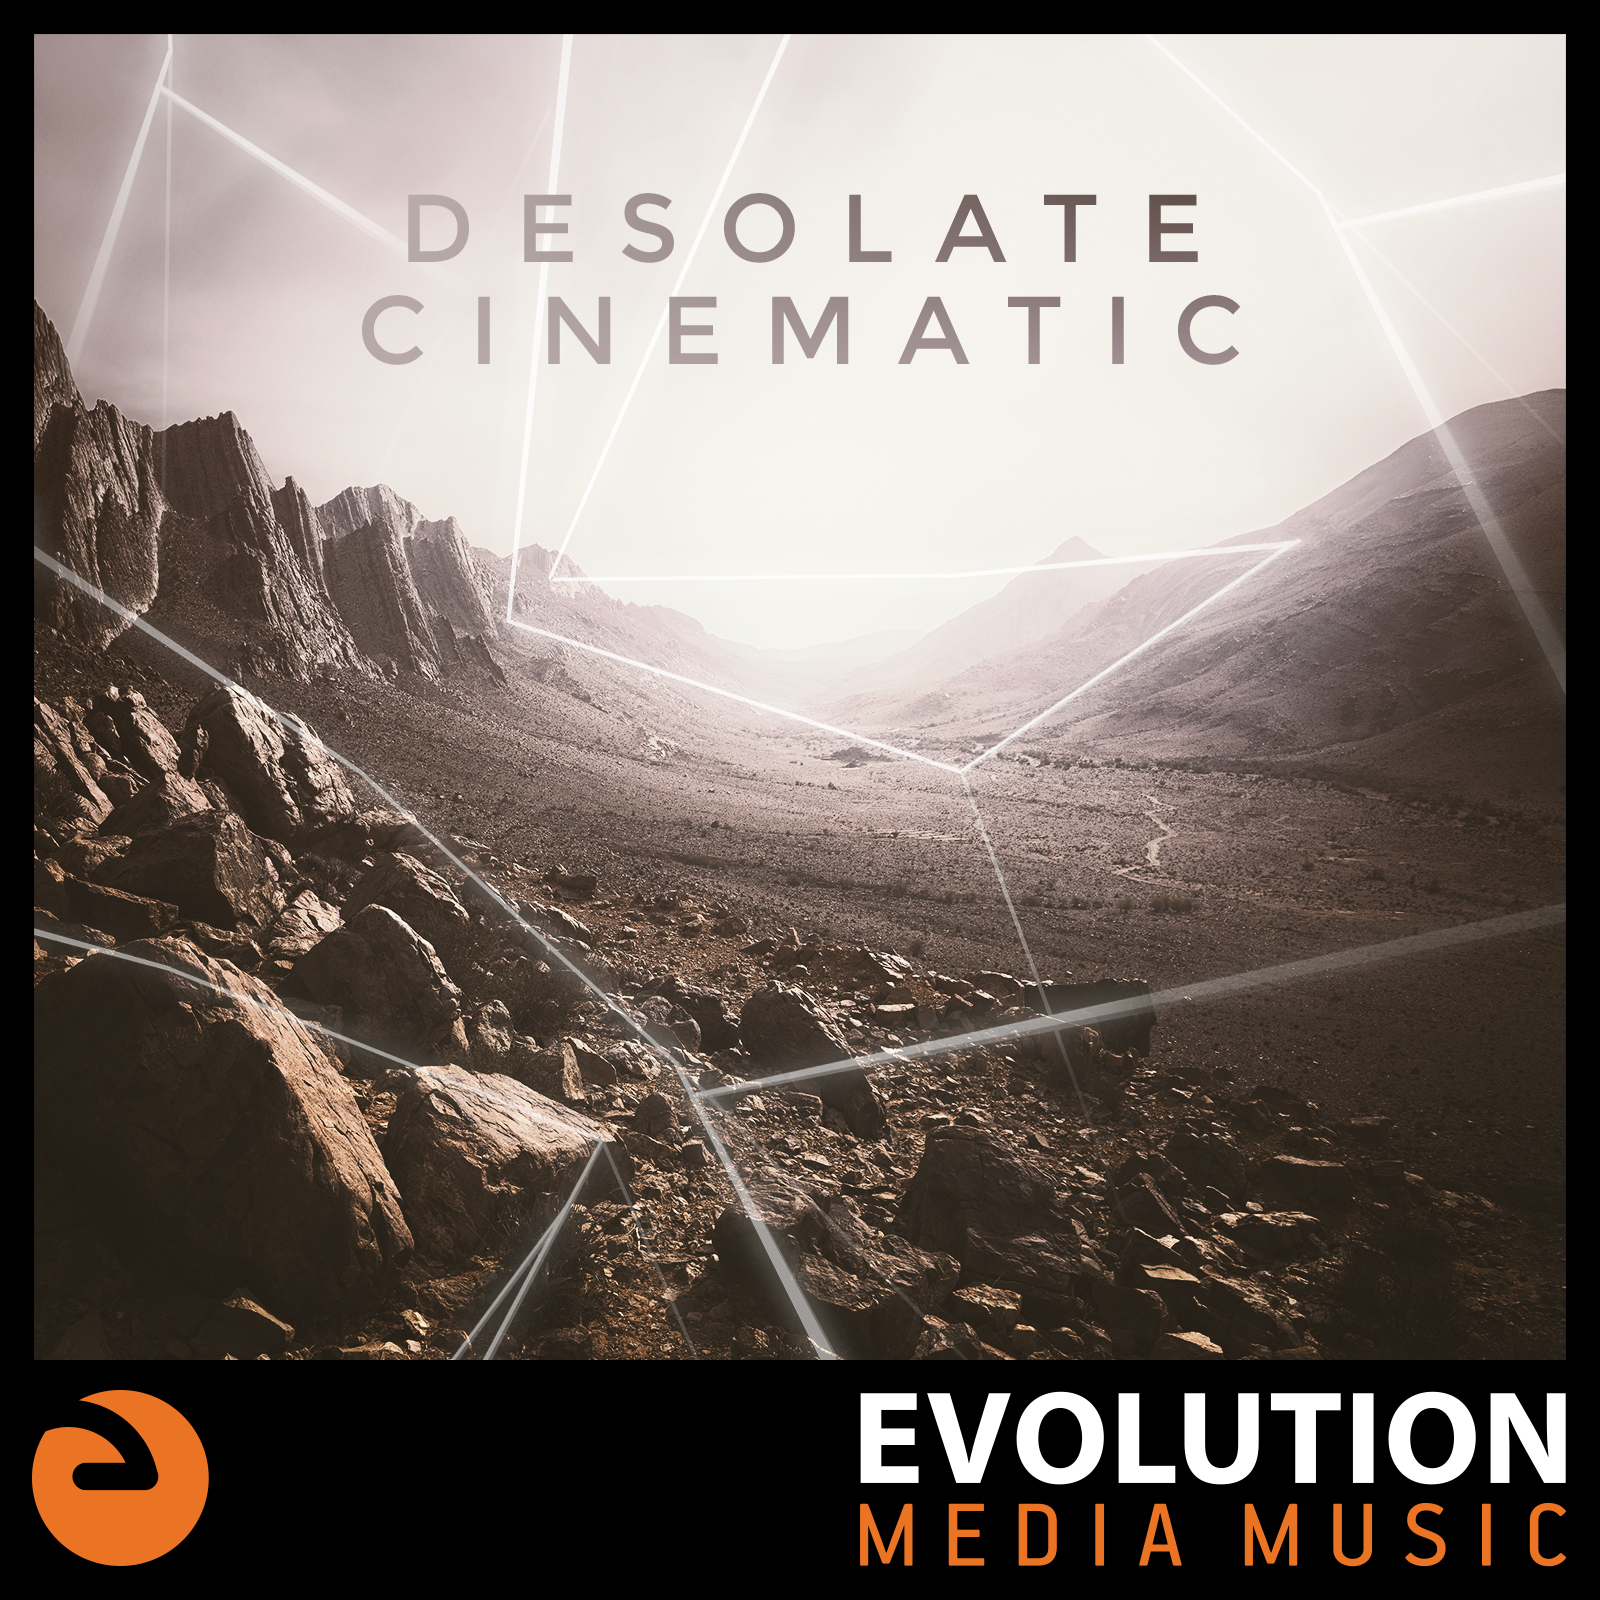 Desolate Cinematic